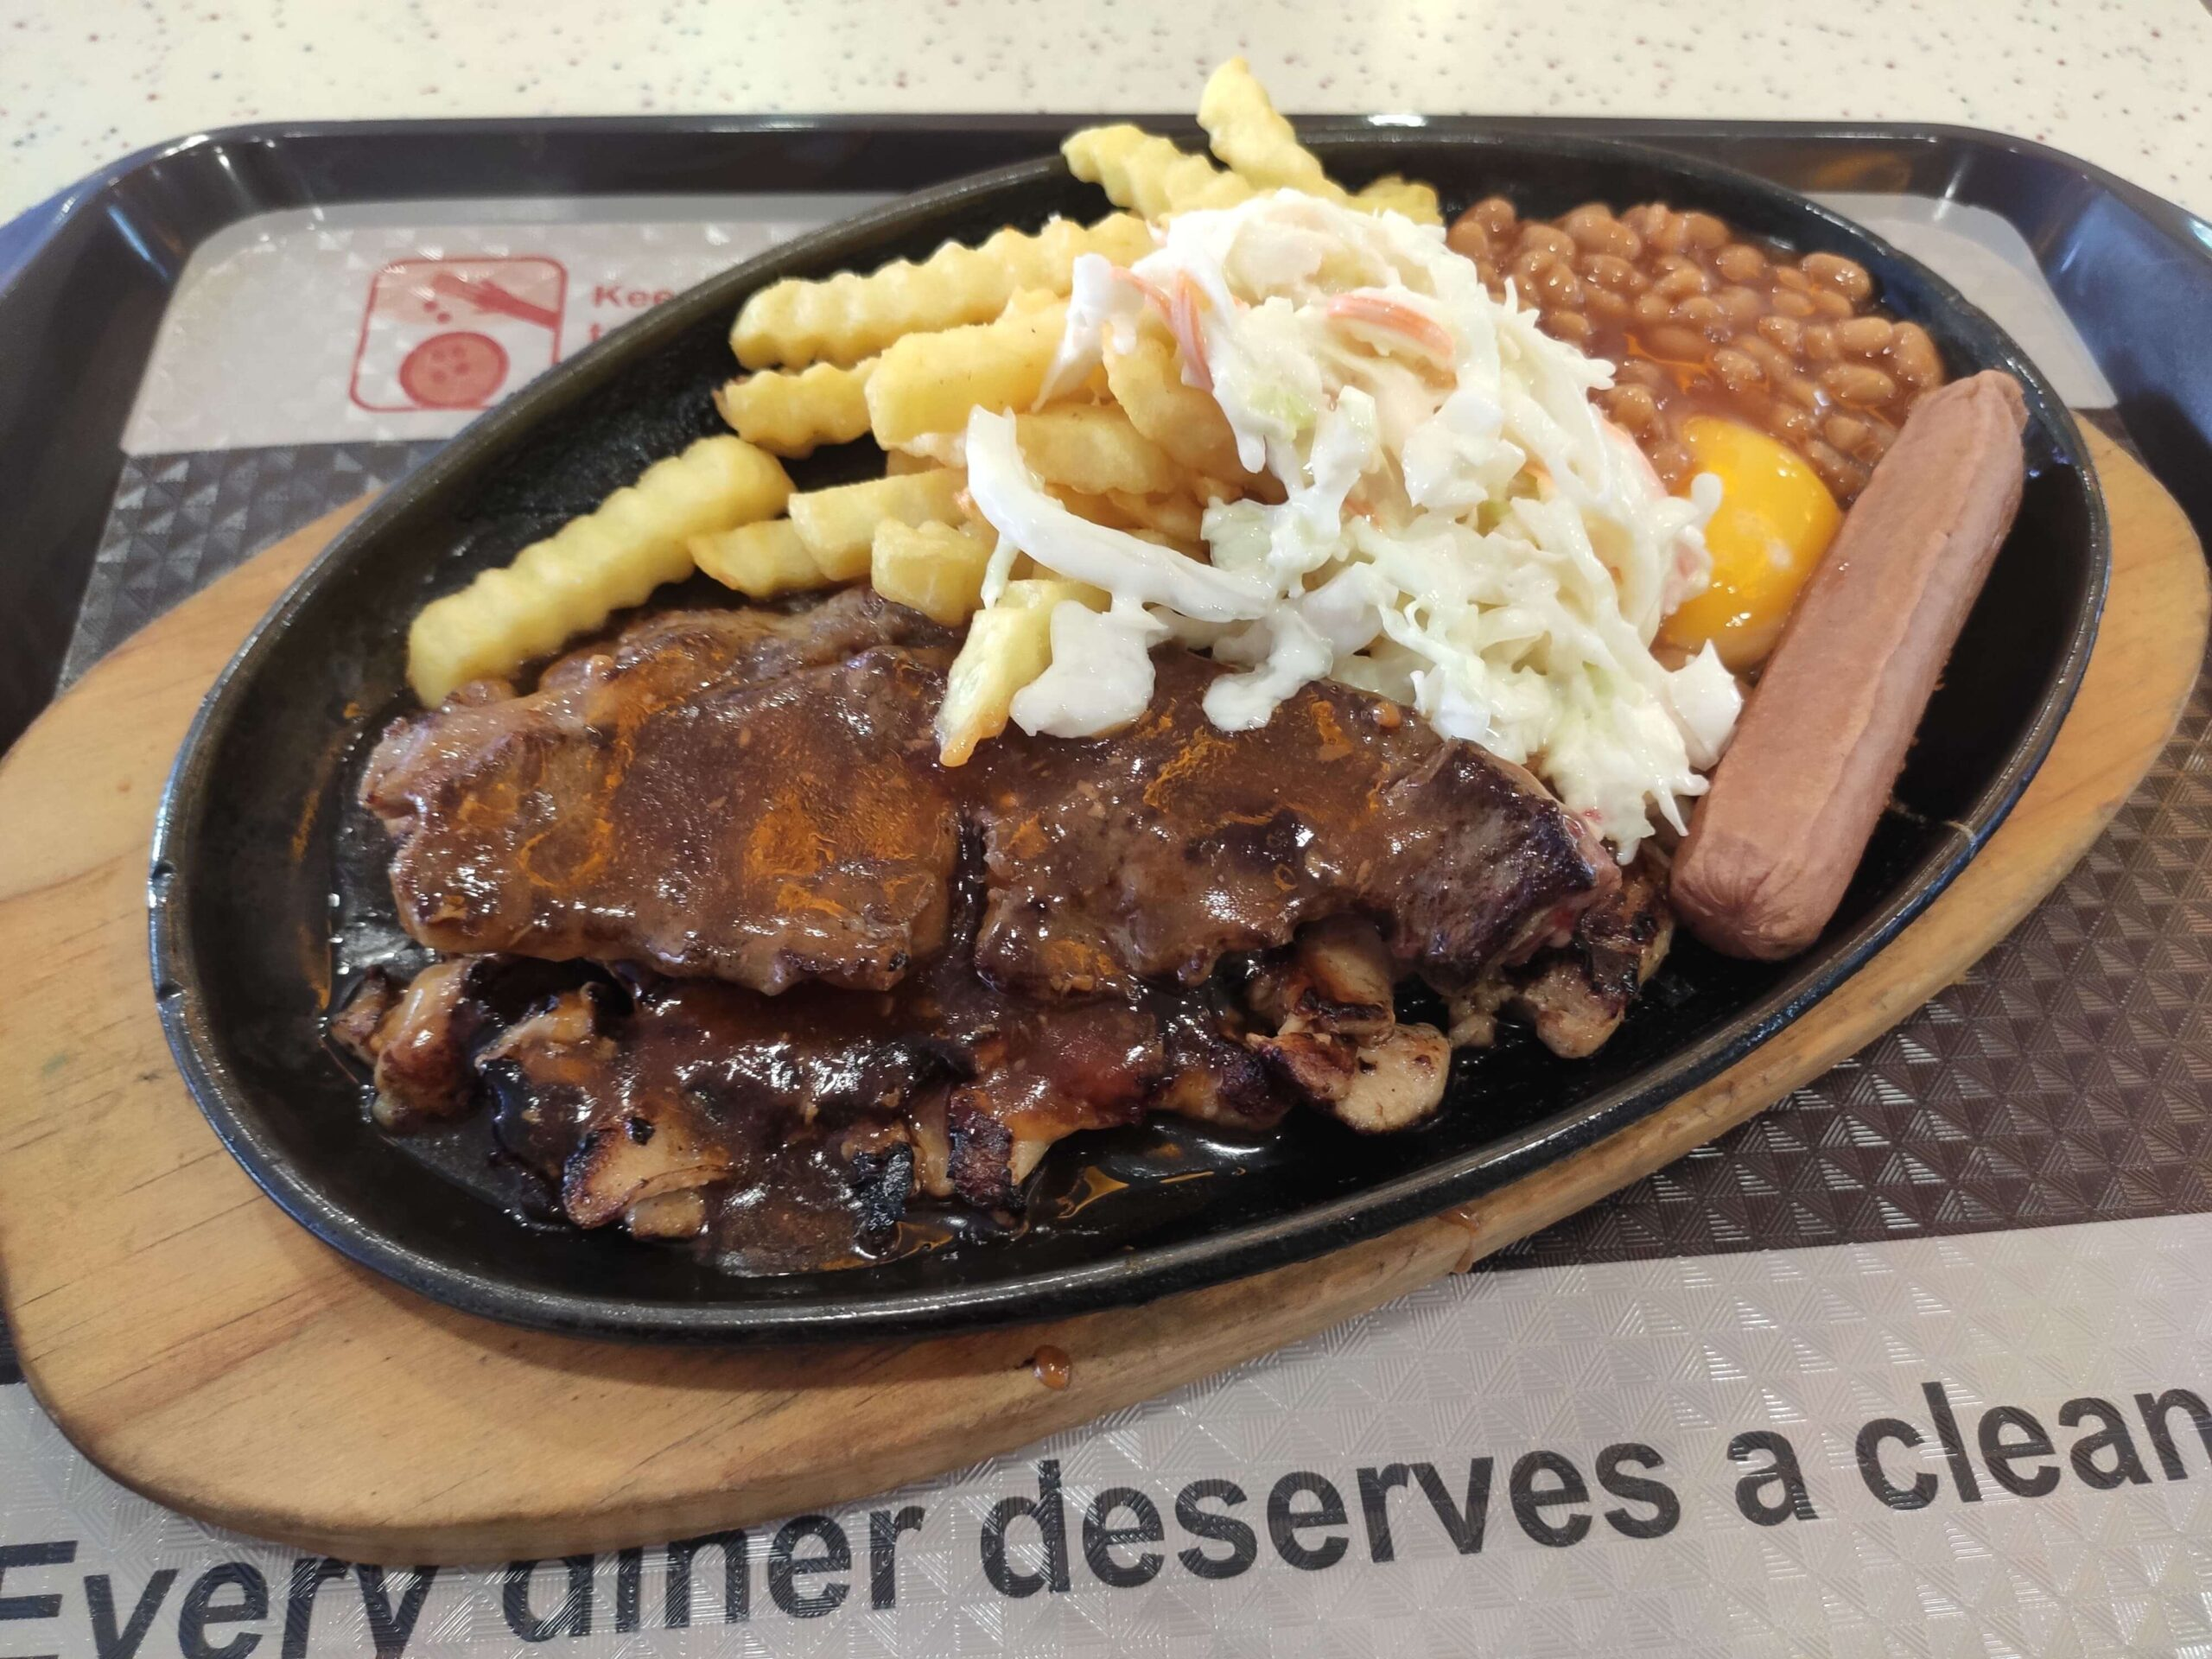 Tiong Bahru Hot Plate Western Food: Mixed Grill